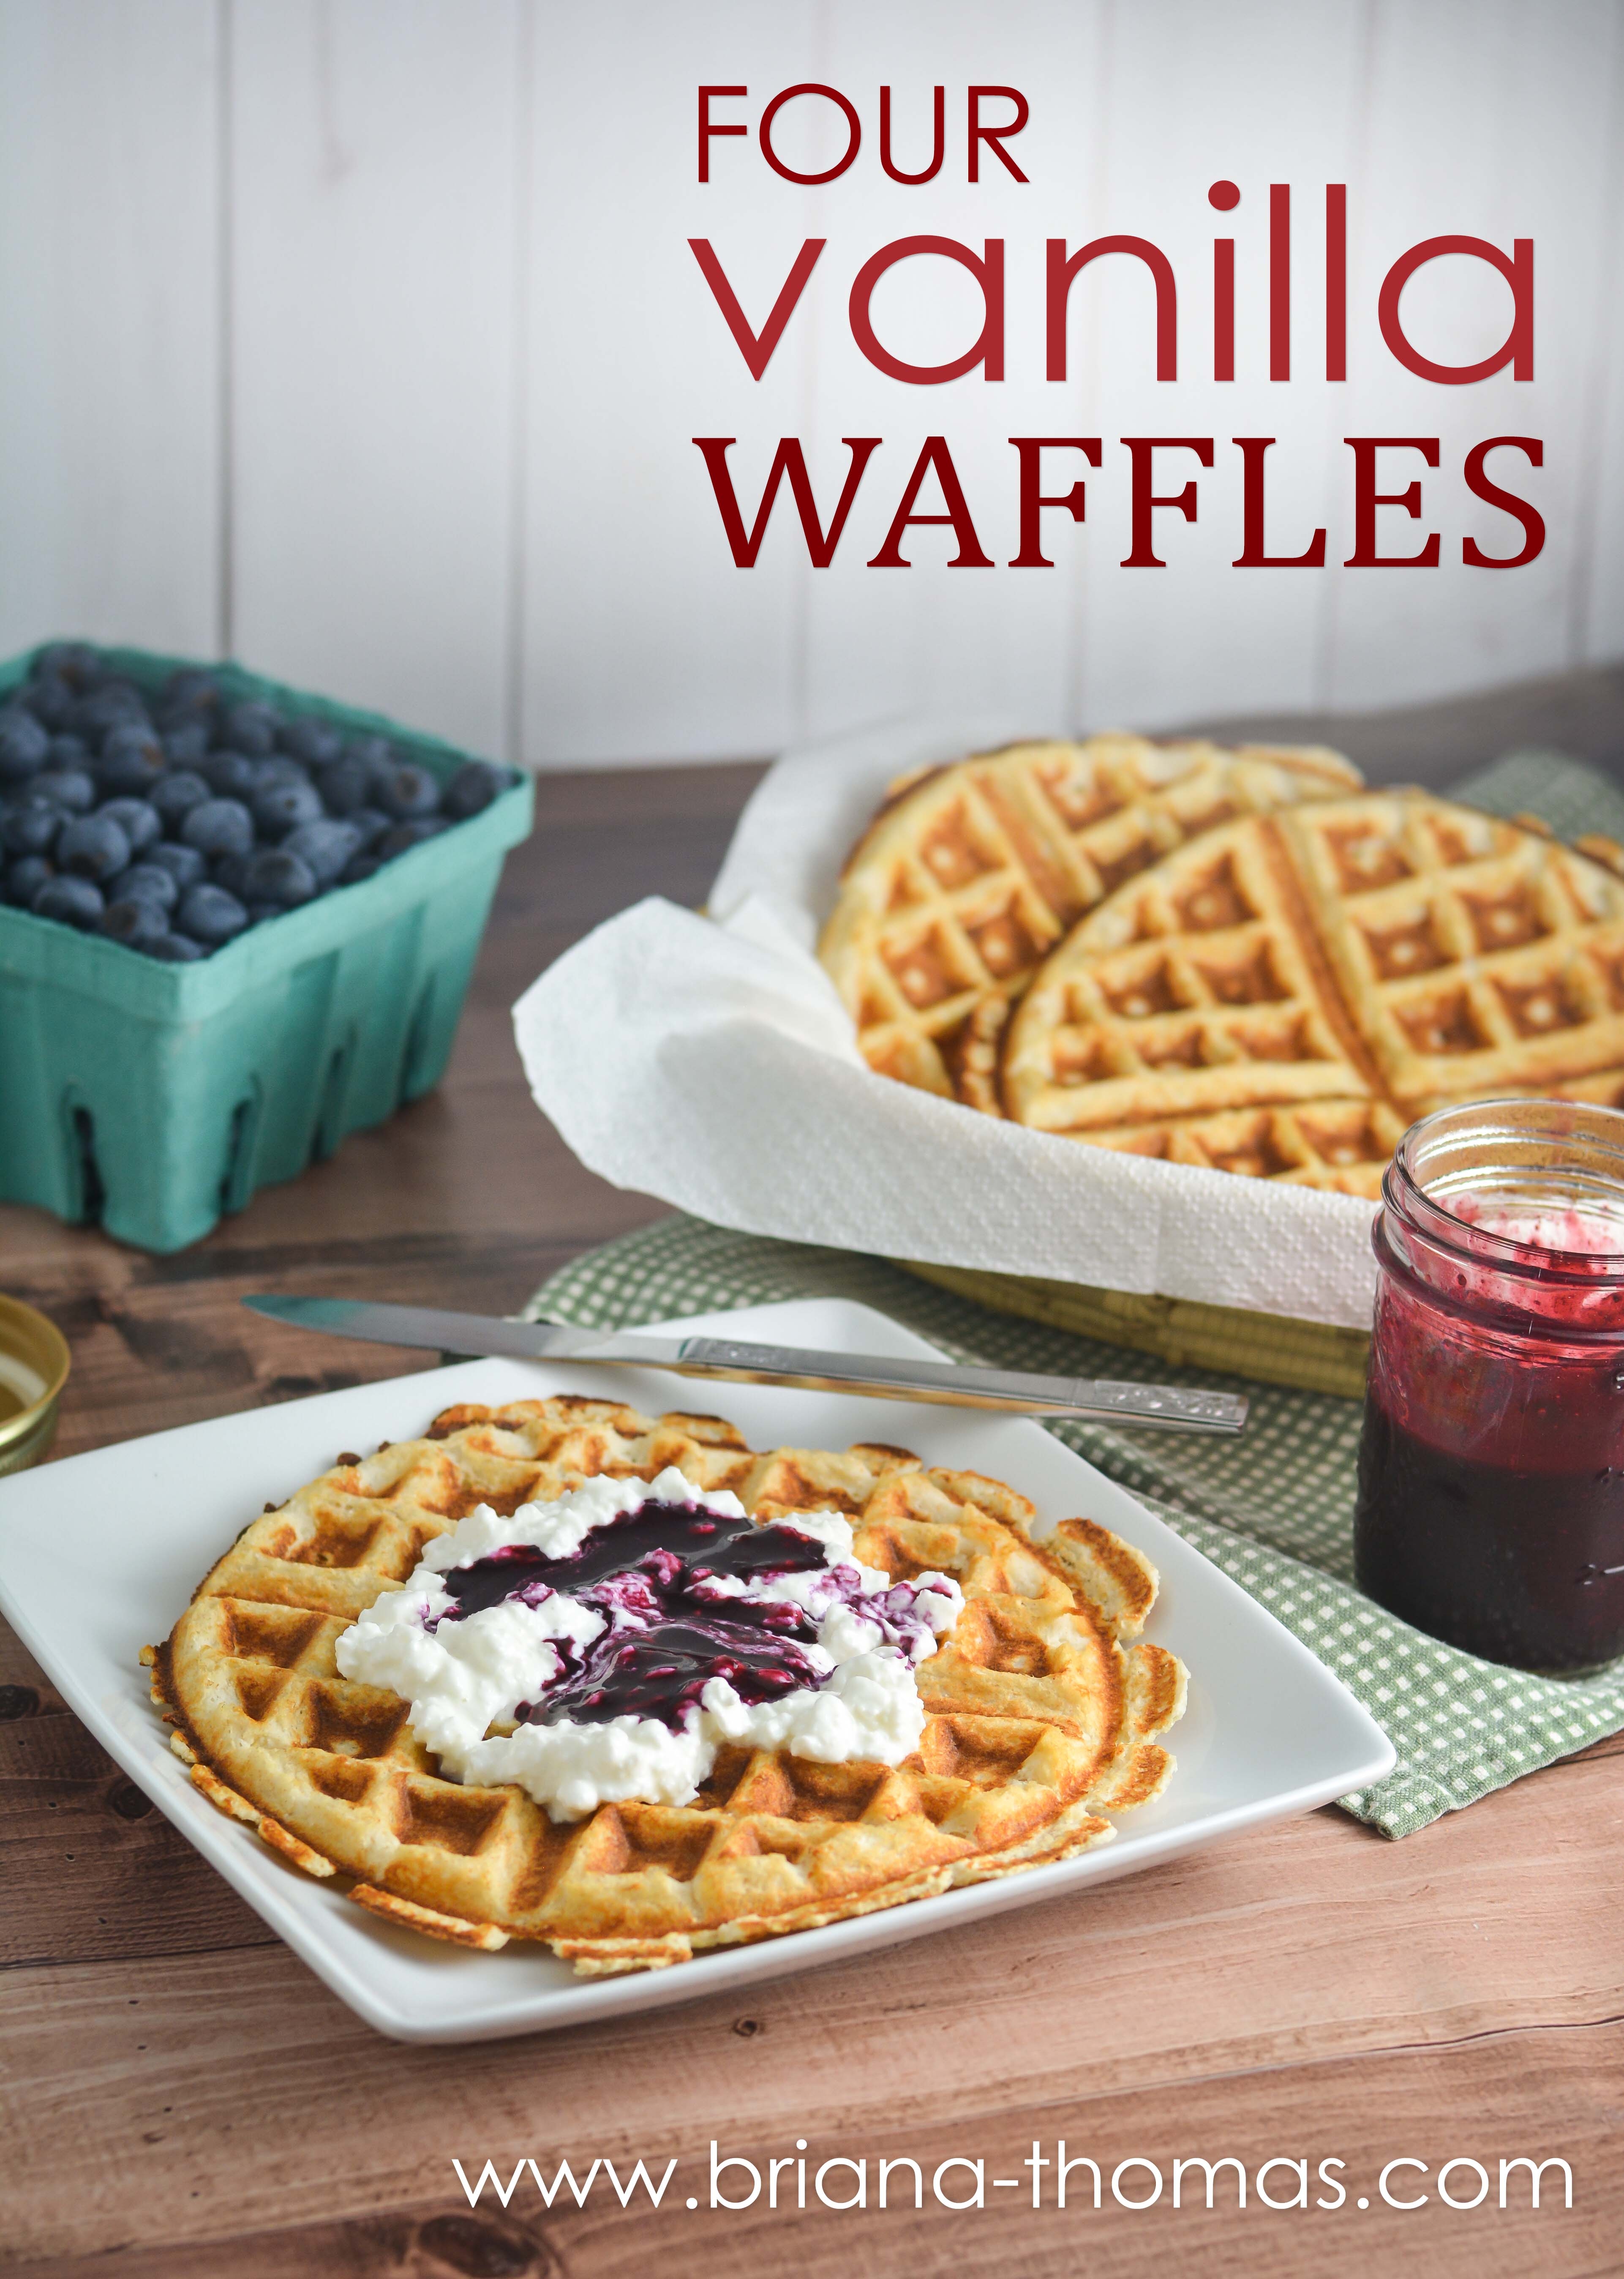 These Four Vanilla Waffles taste like Nilla Wafers and are my favorite low-carb waffle! THM:Fuel Pull, low fat, sugar free, gluten/nut free